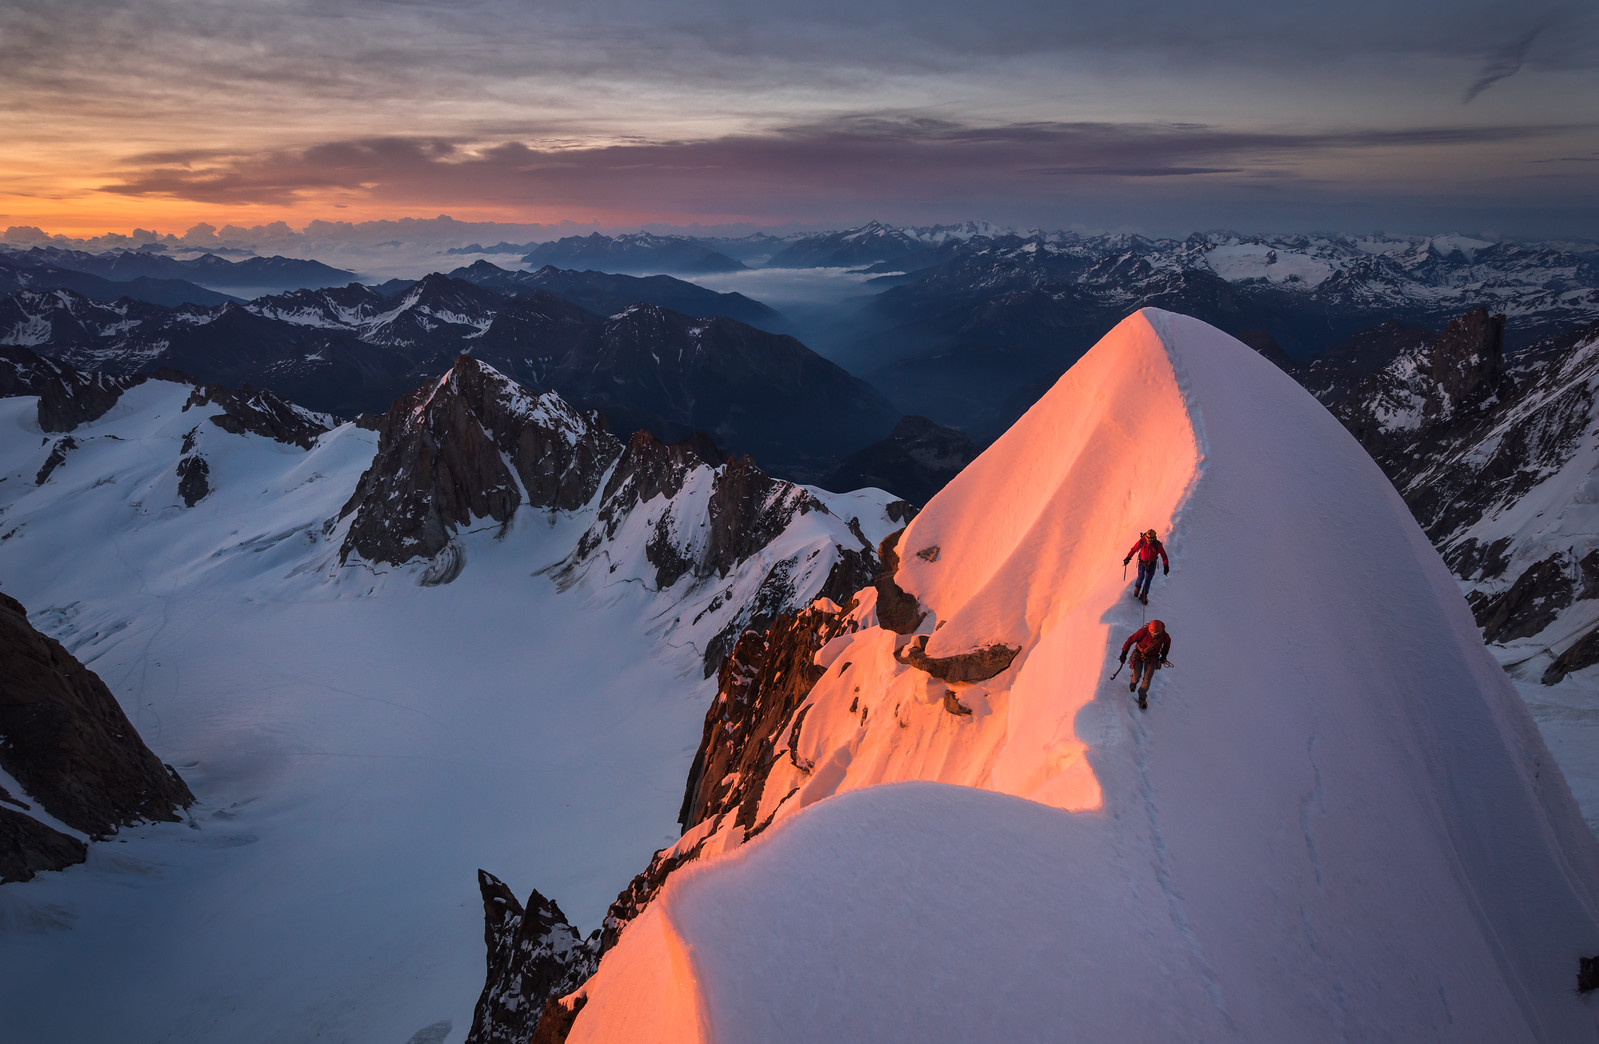 Jon Morgan and Paul Cornforth on the Kuffner Arete, Chamonix, France/Italy